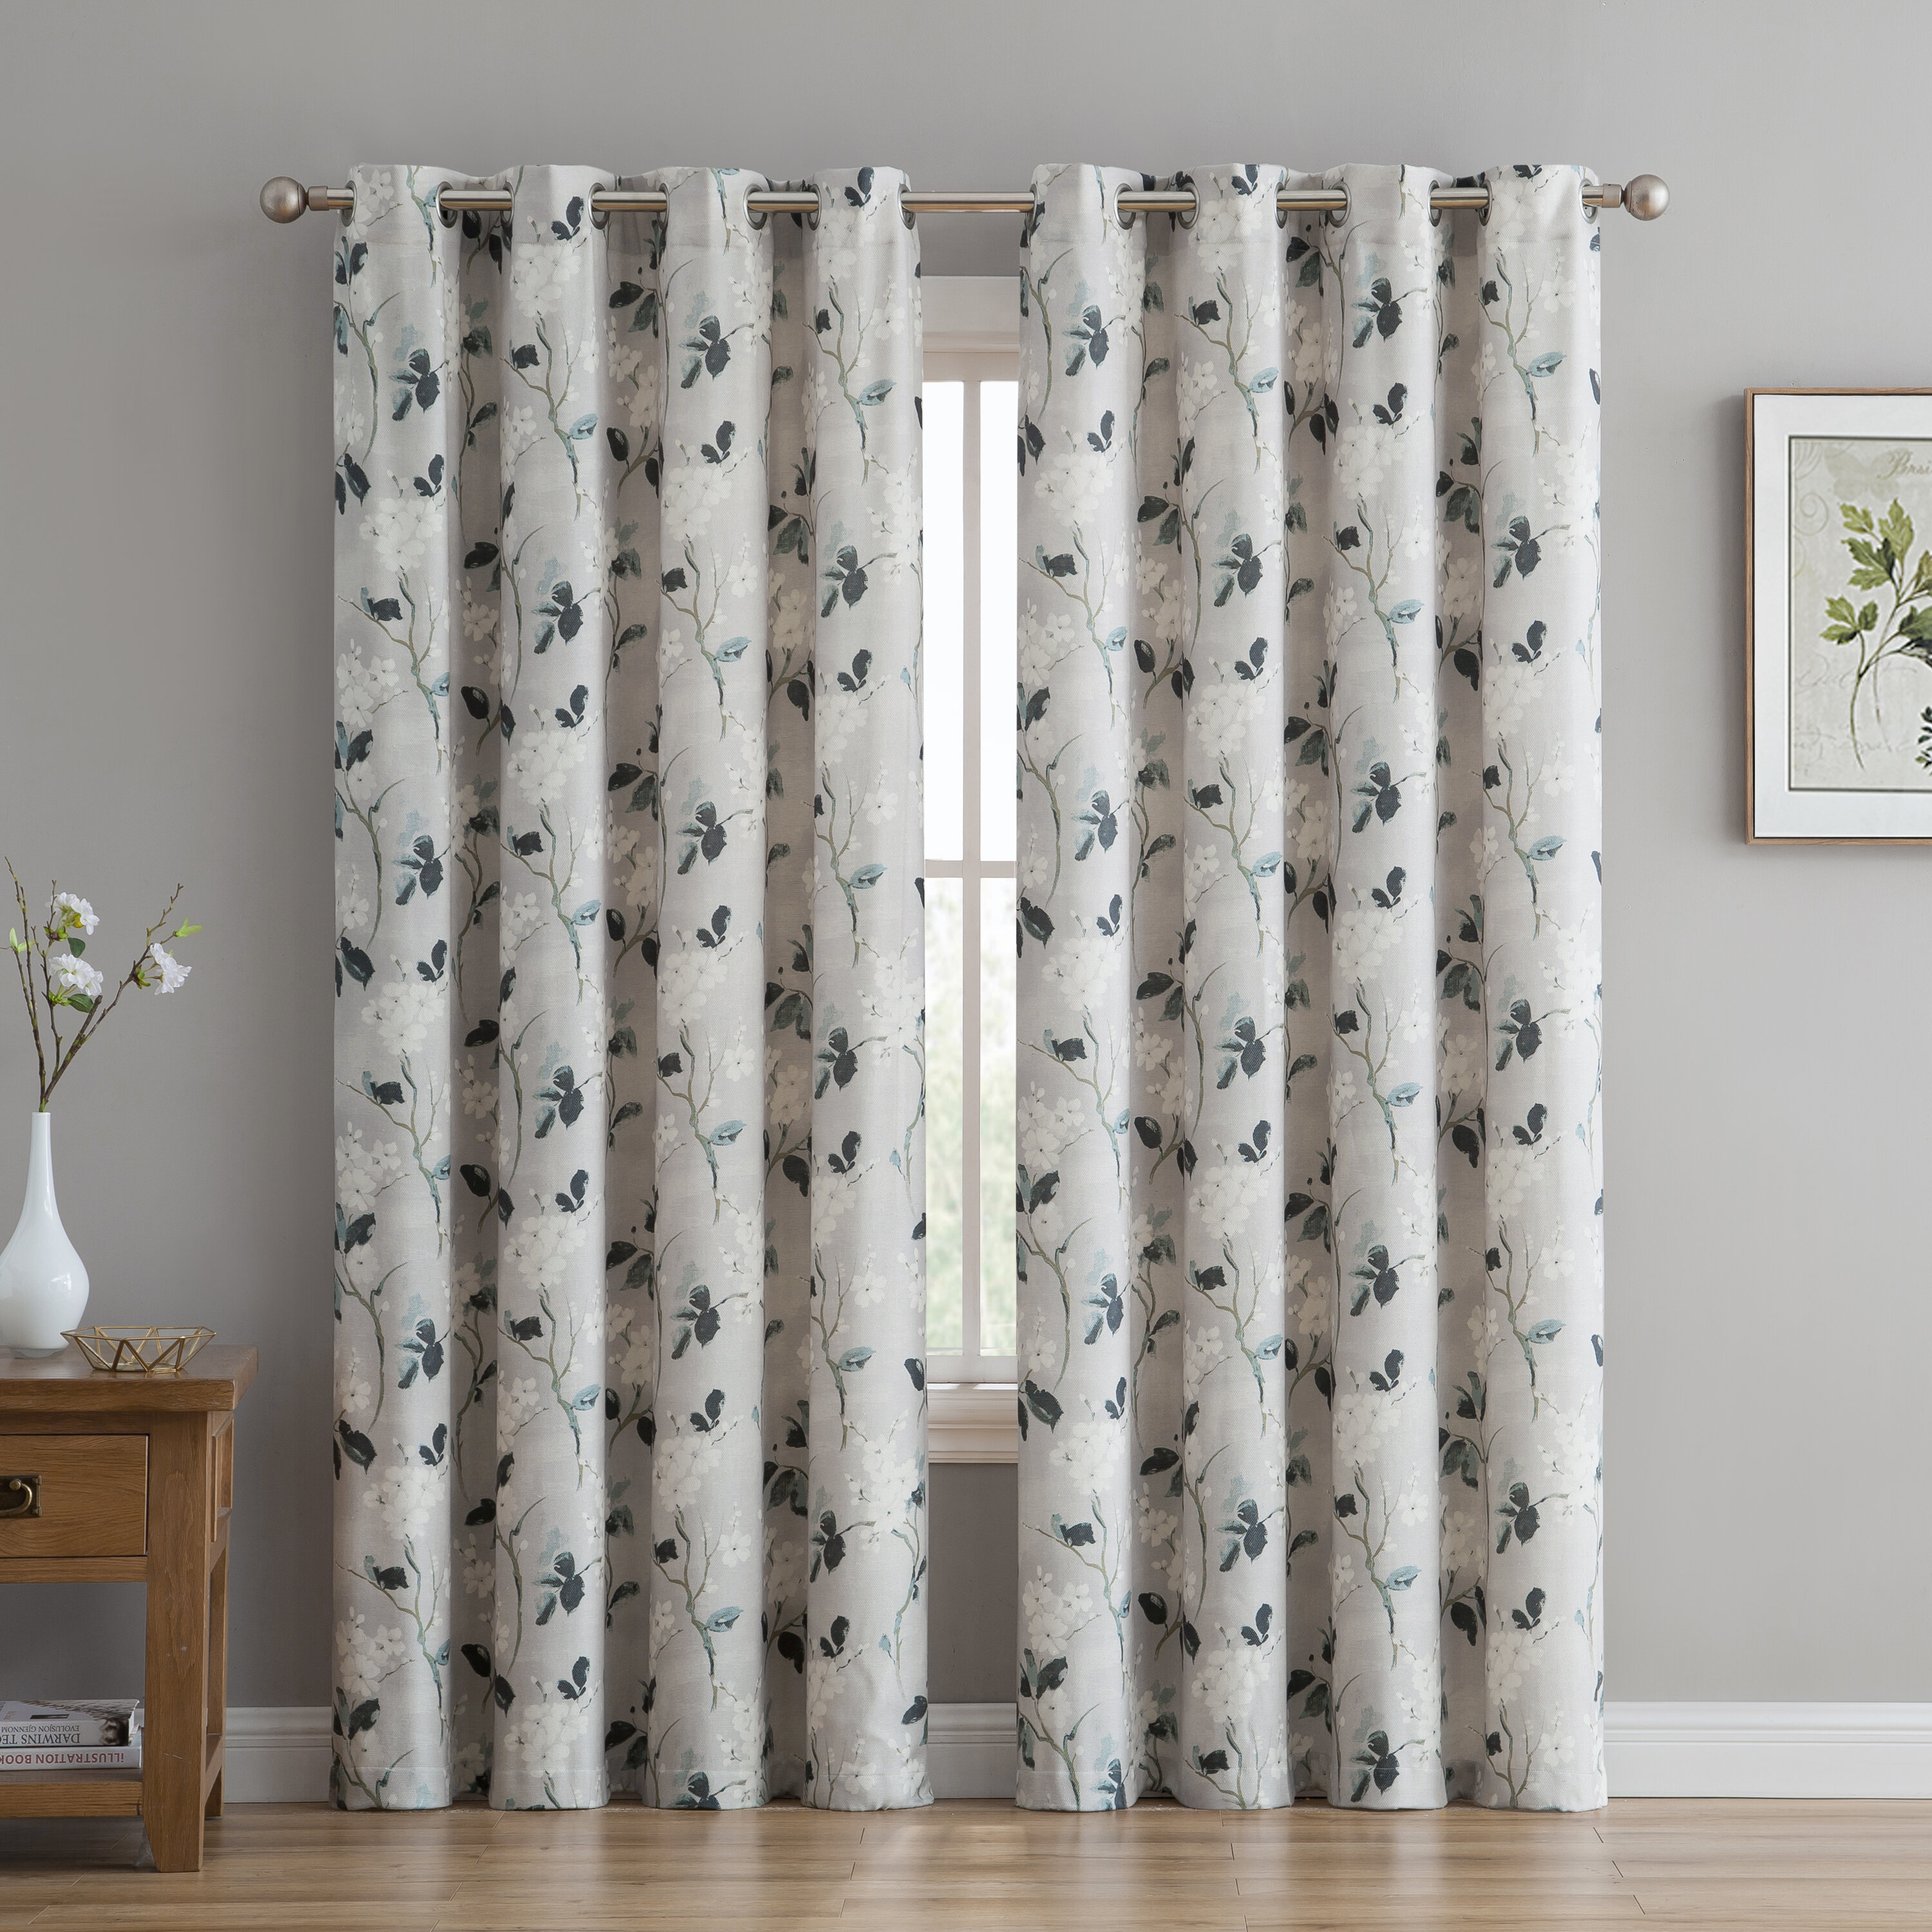 Grommet Curtain Patterns With Regard To Primebeau Geometric Pattern Blackout Curtain Pairs (View 20 of 20)